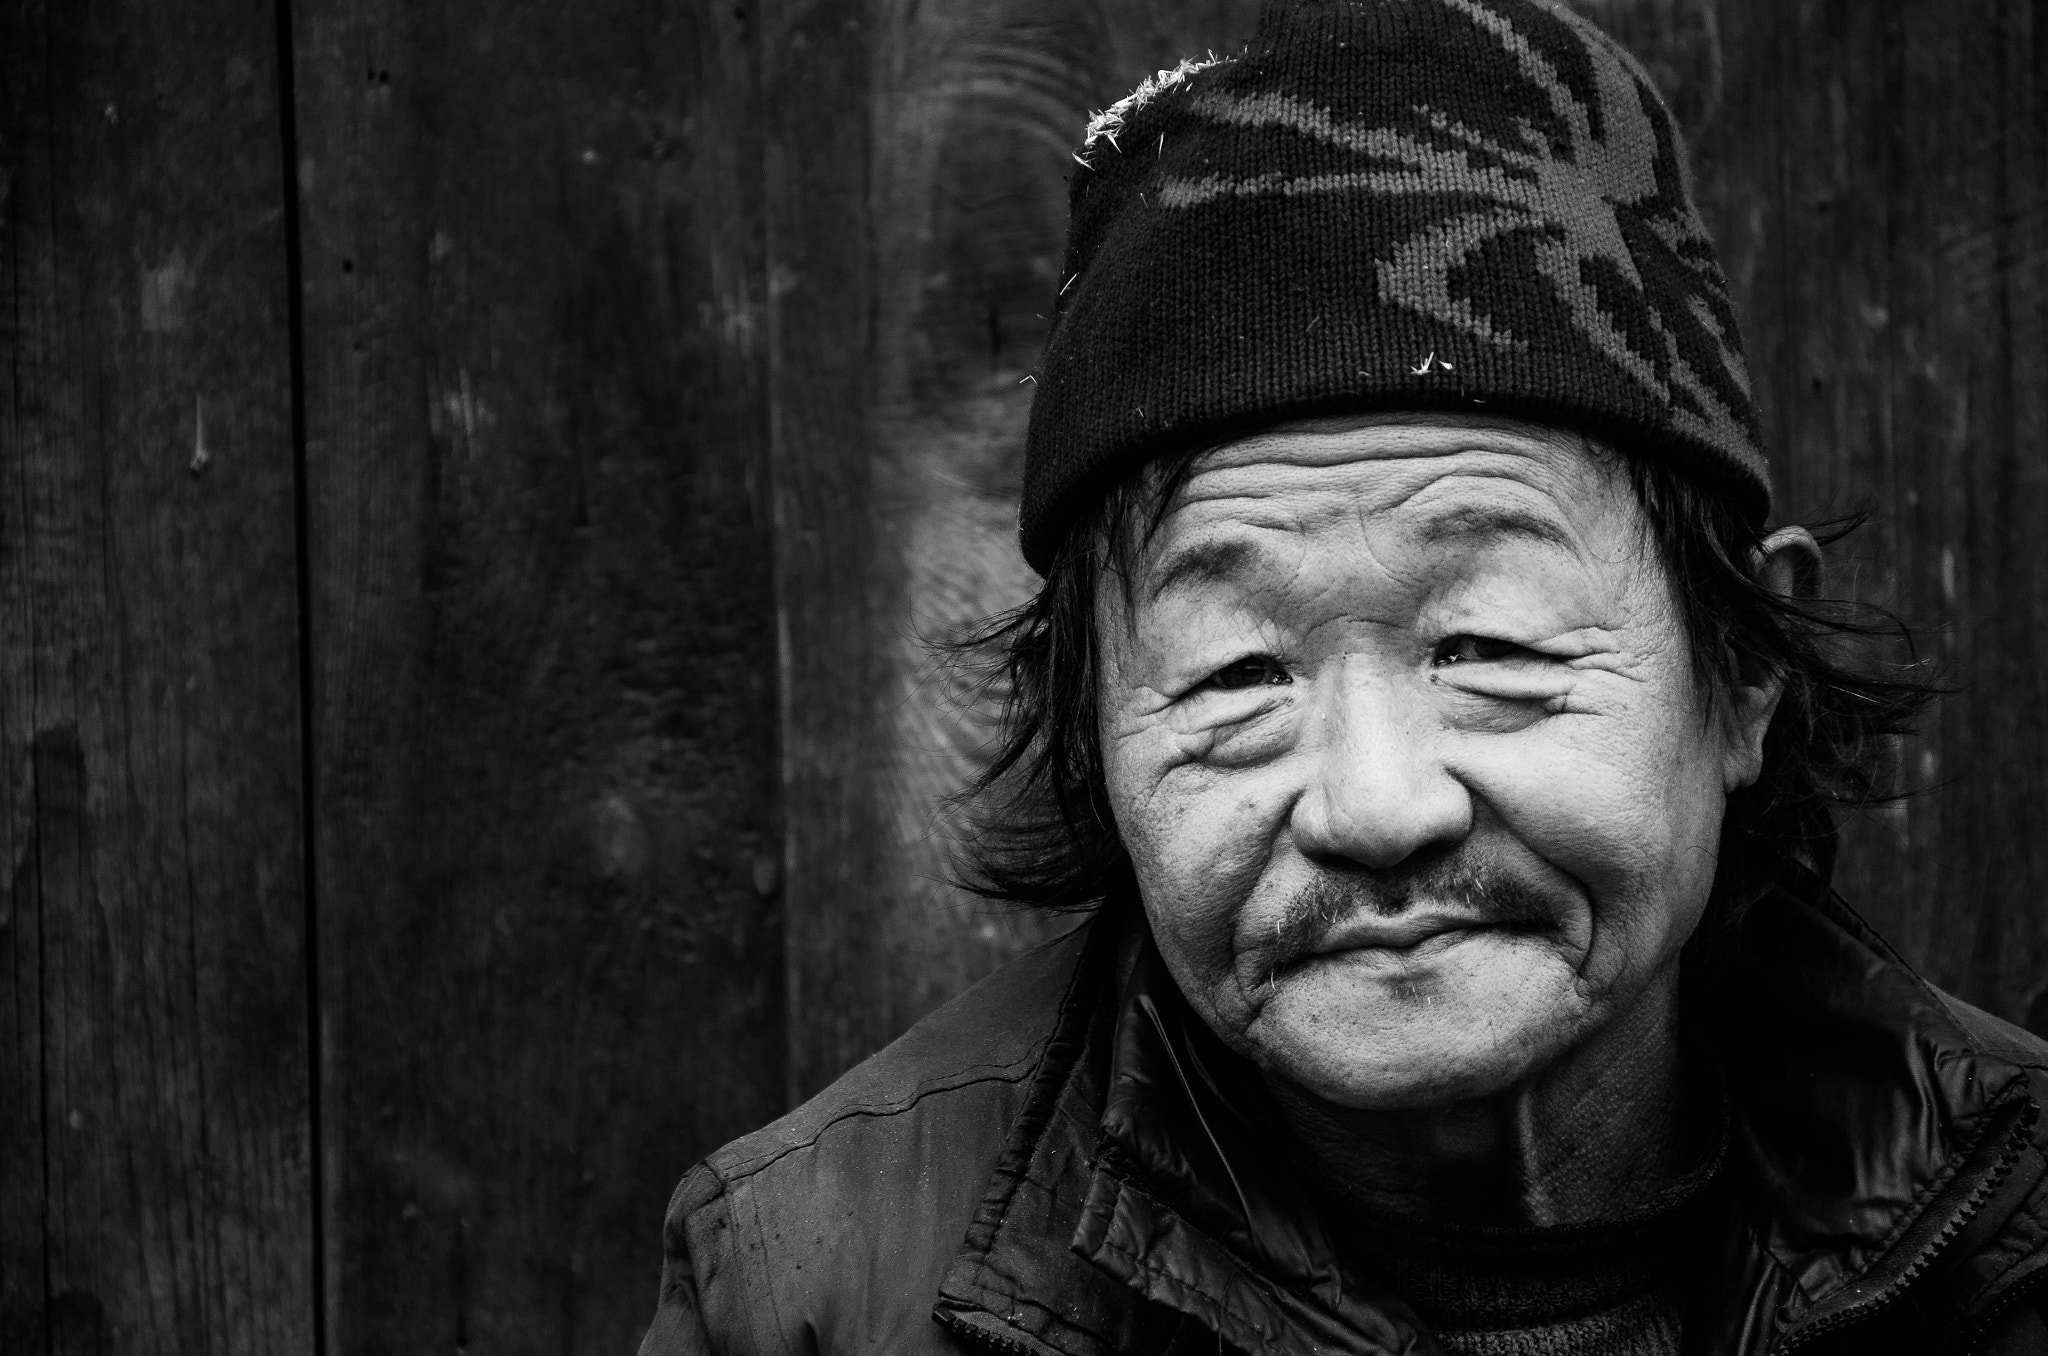 Photograph Faces of Nepal by Ayush Bajracharya on 500px